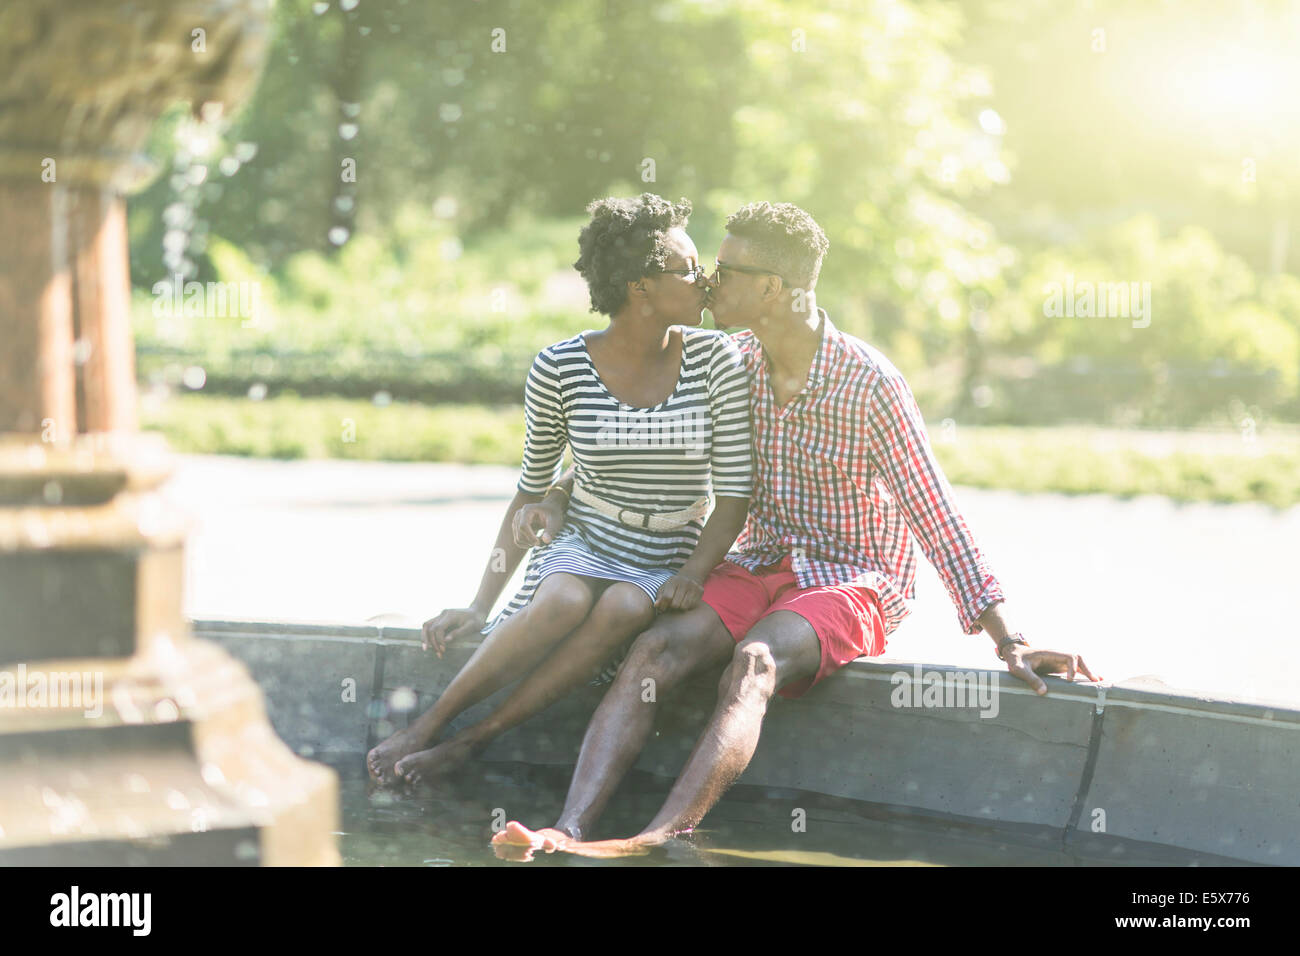 Young couple kissing with bare feet in Bethesda fountain, Central Park, New York City, USA - Stock Image